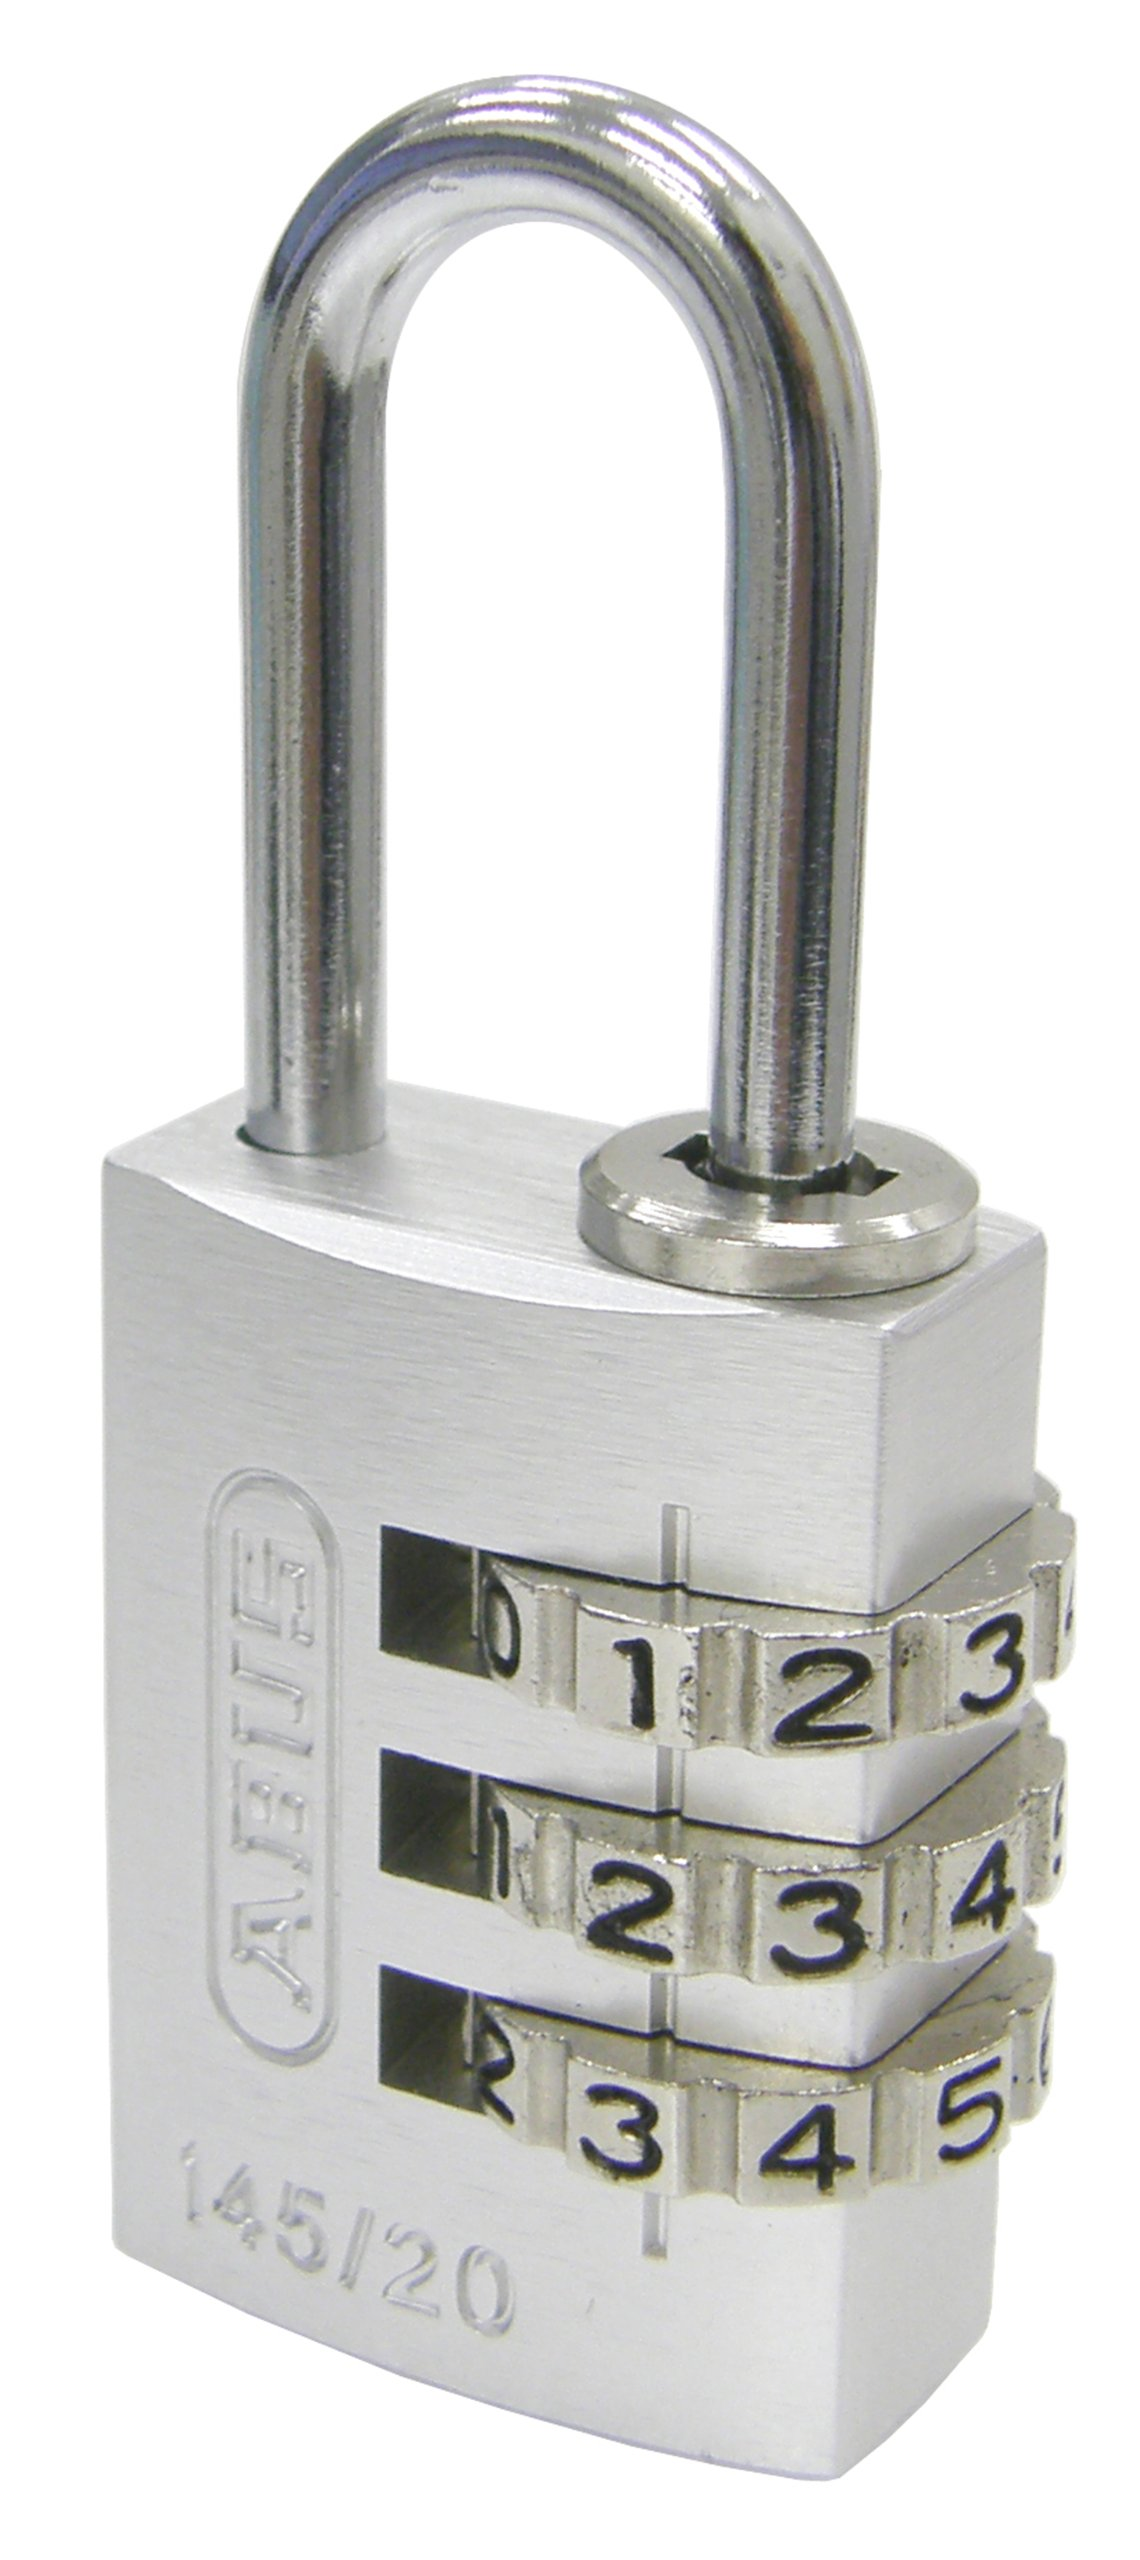 COMBINATION PADLOCK, Light and Colorful, Compact size, Popular in versatile identification, Color : Silver